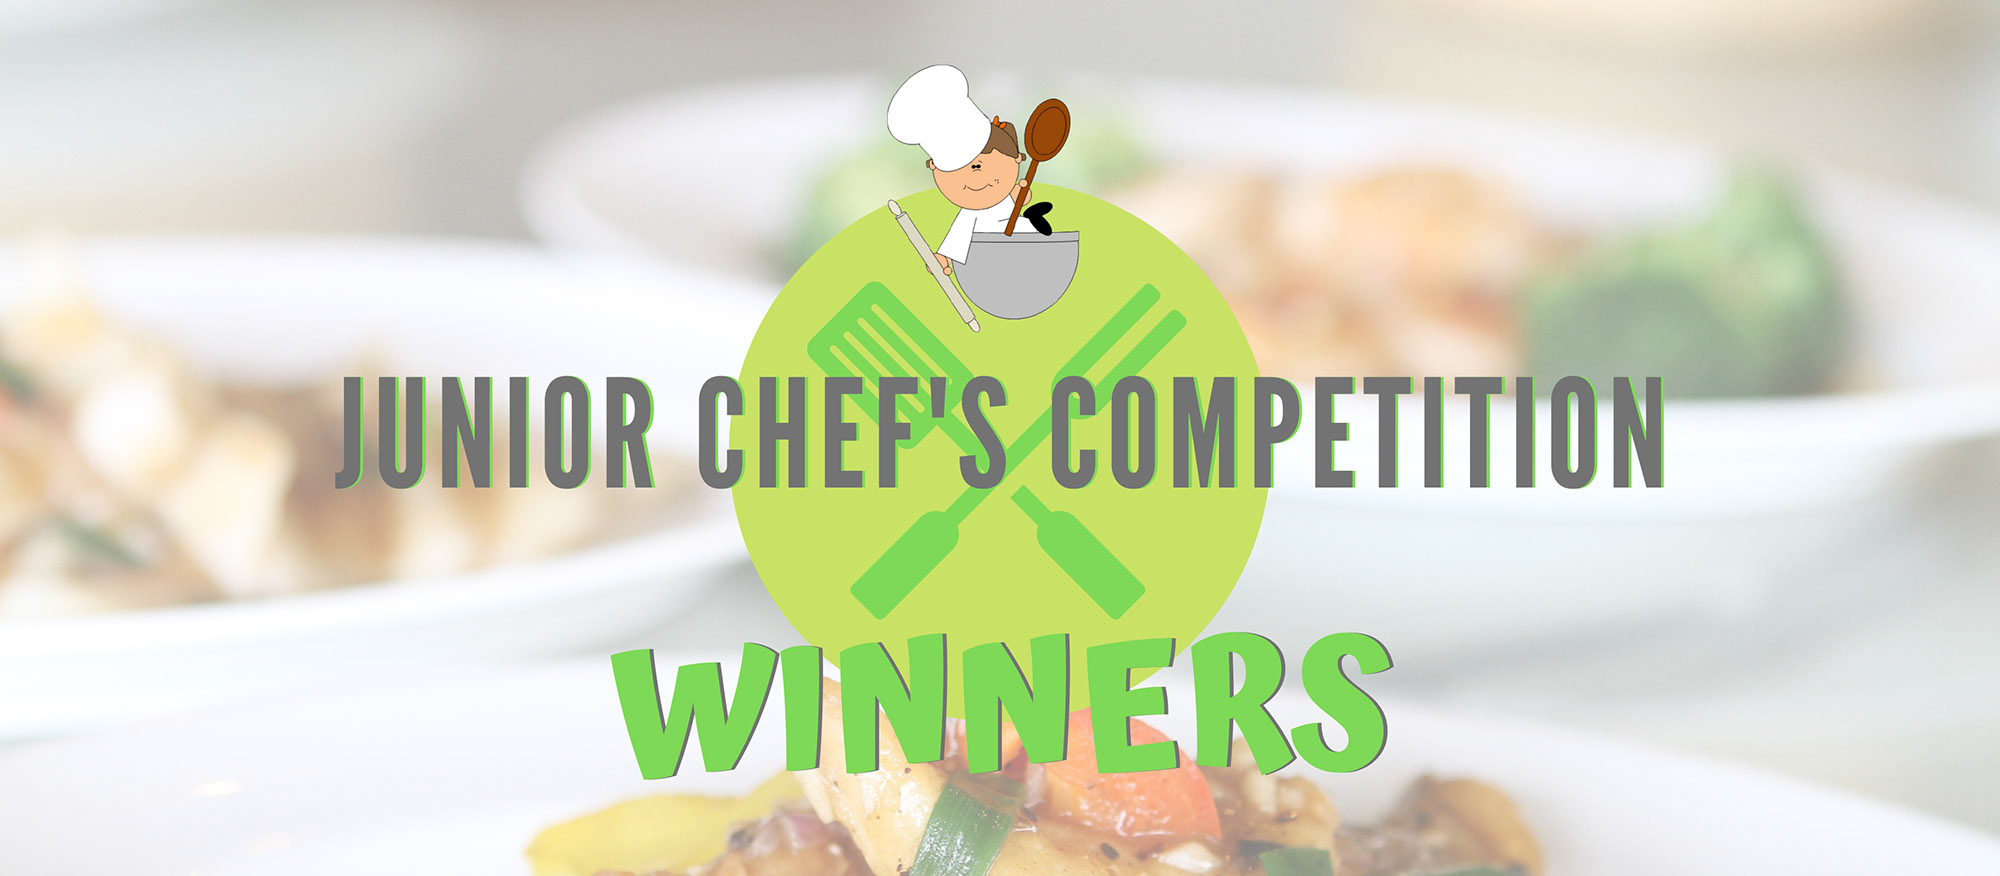 PfISD Junior Chef's Competition winners honored